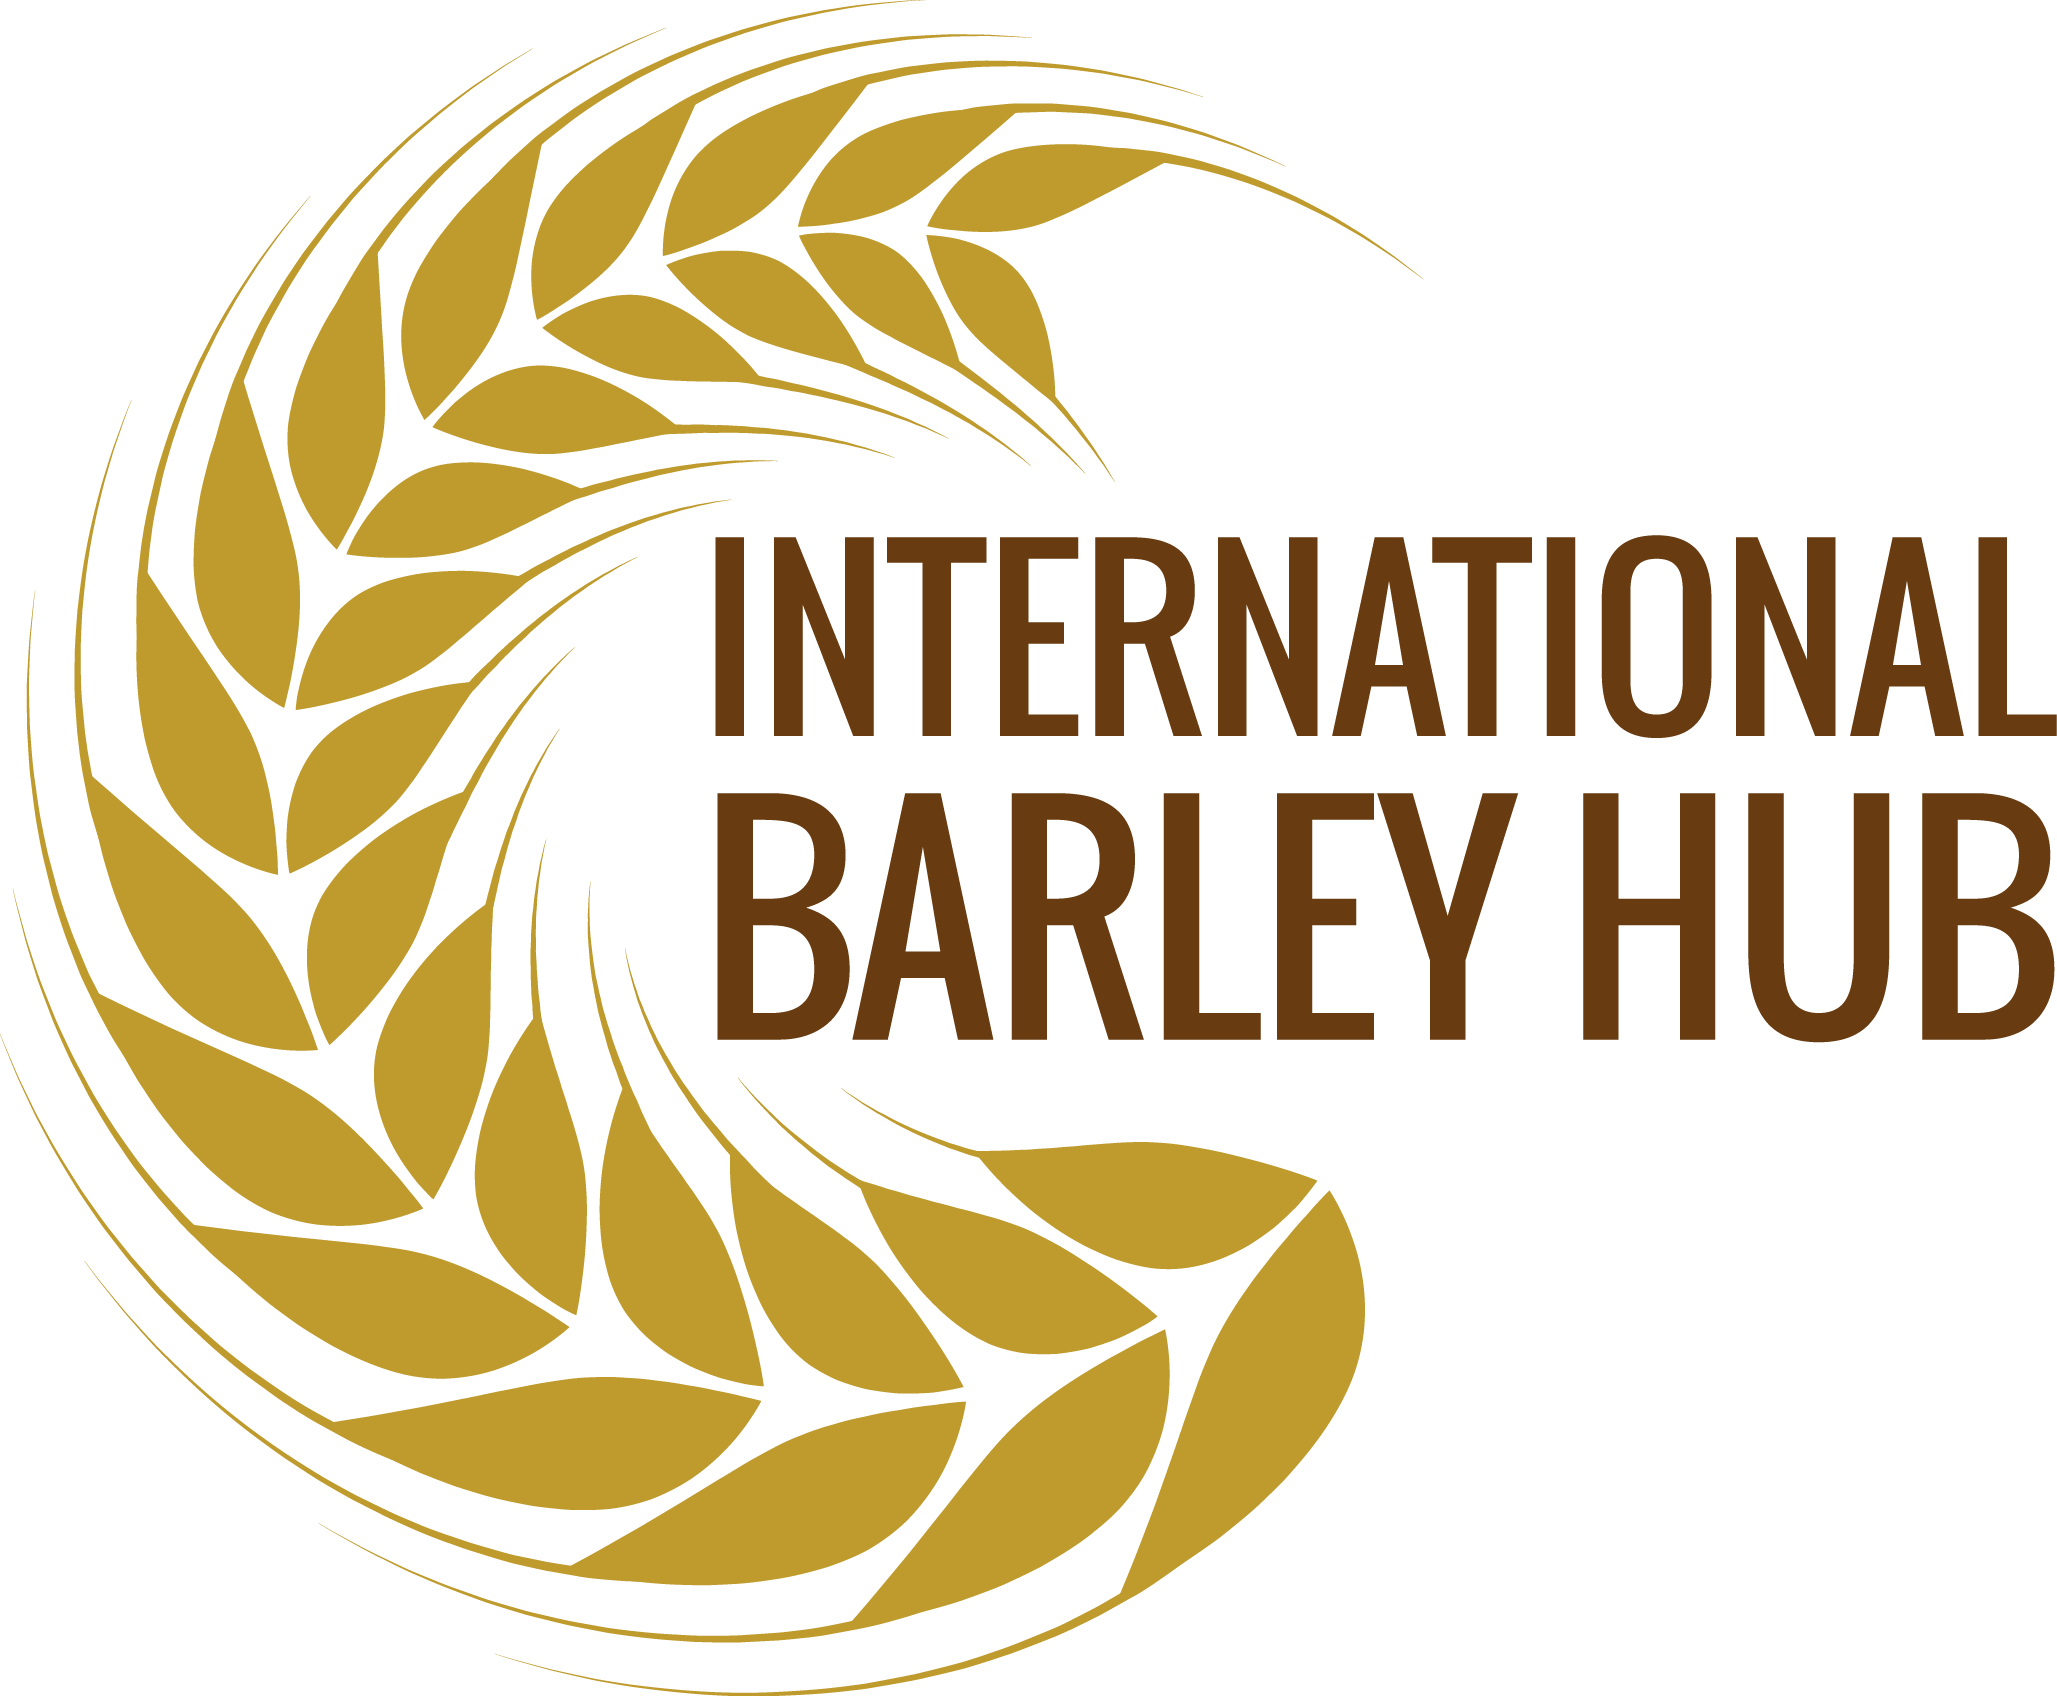 International Barley Hub